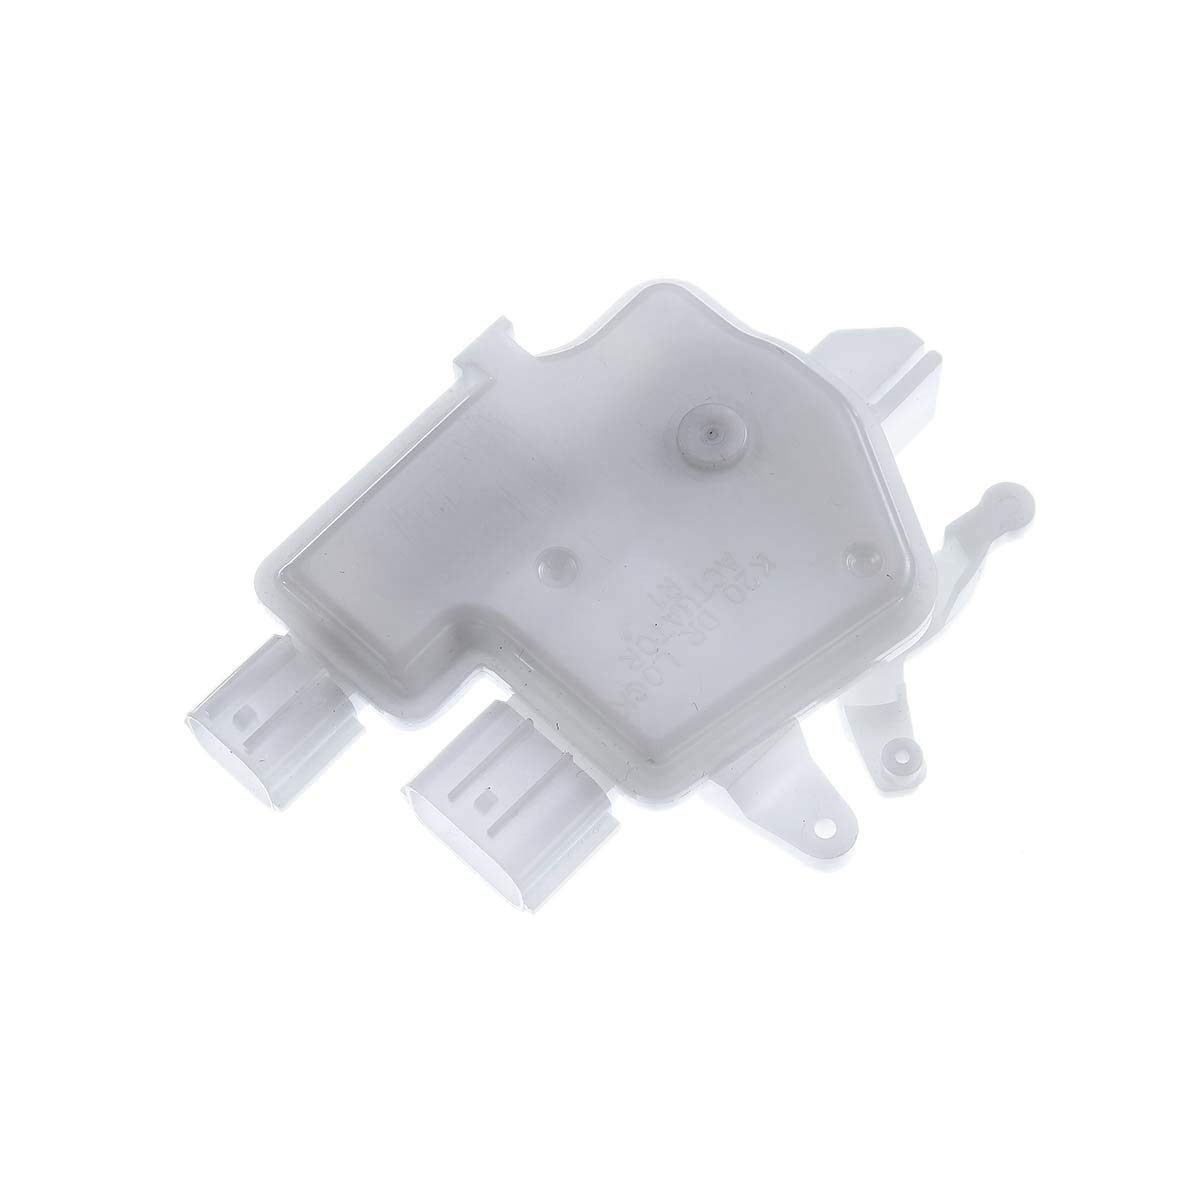 A-Premium Door Lock Actuator Motor for Subaru Legacy Outback 2005-2009 Front or Rear Right Passenger Side